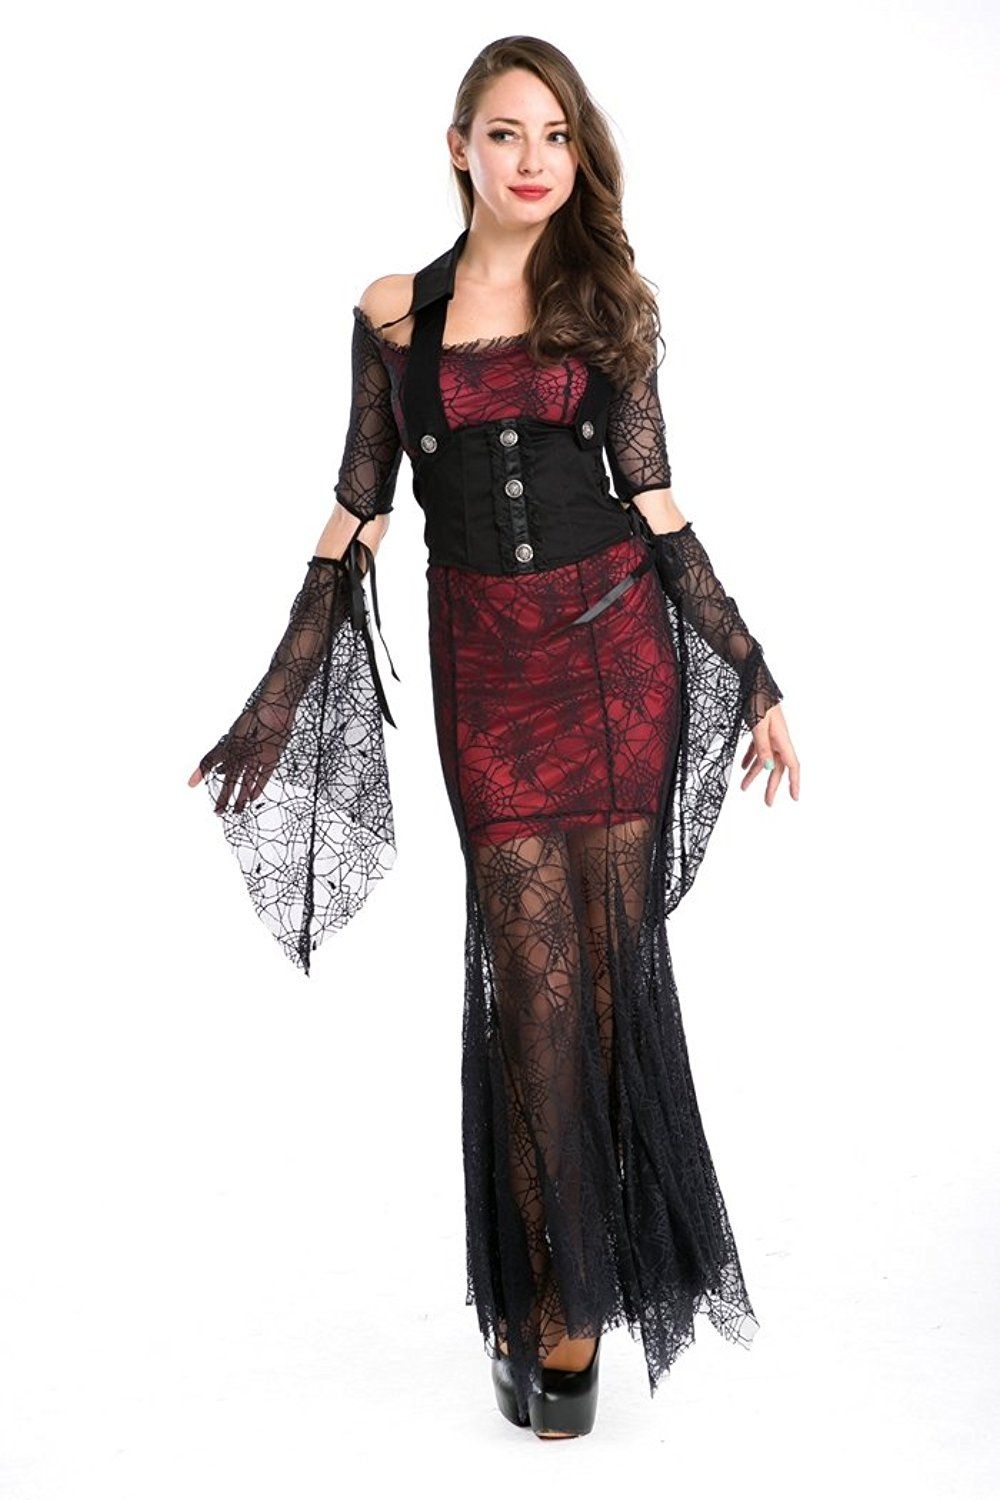 Pin on Cosplay costumes for women